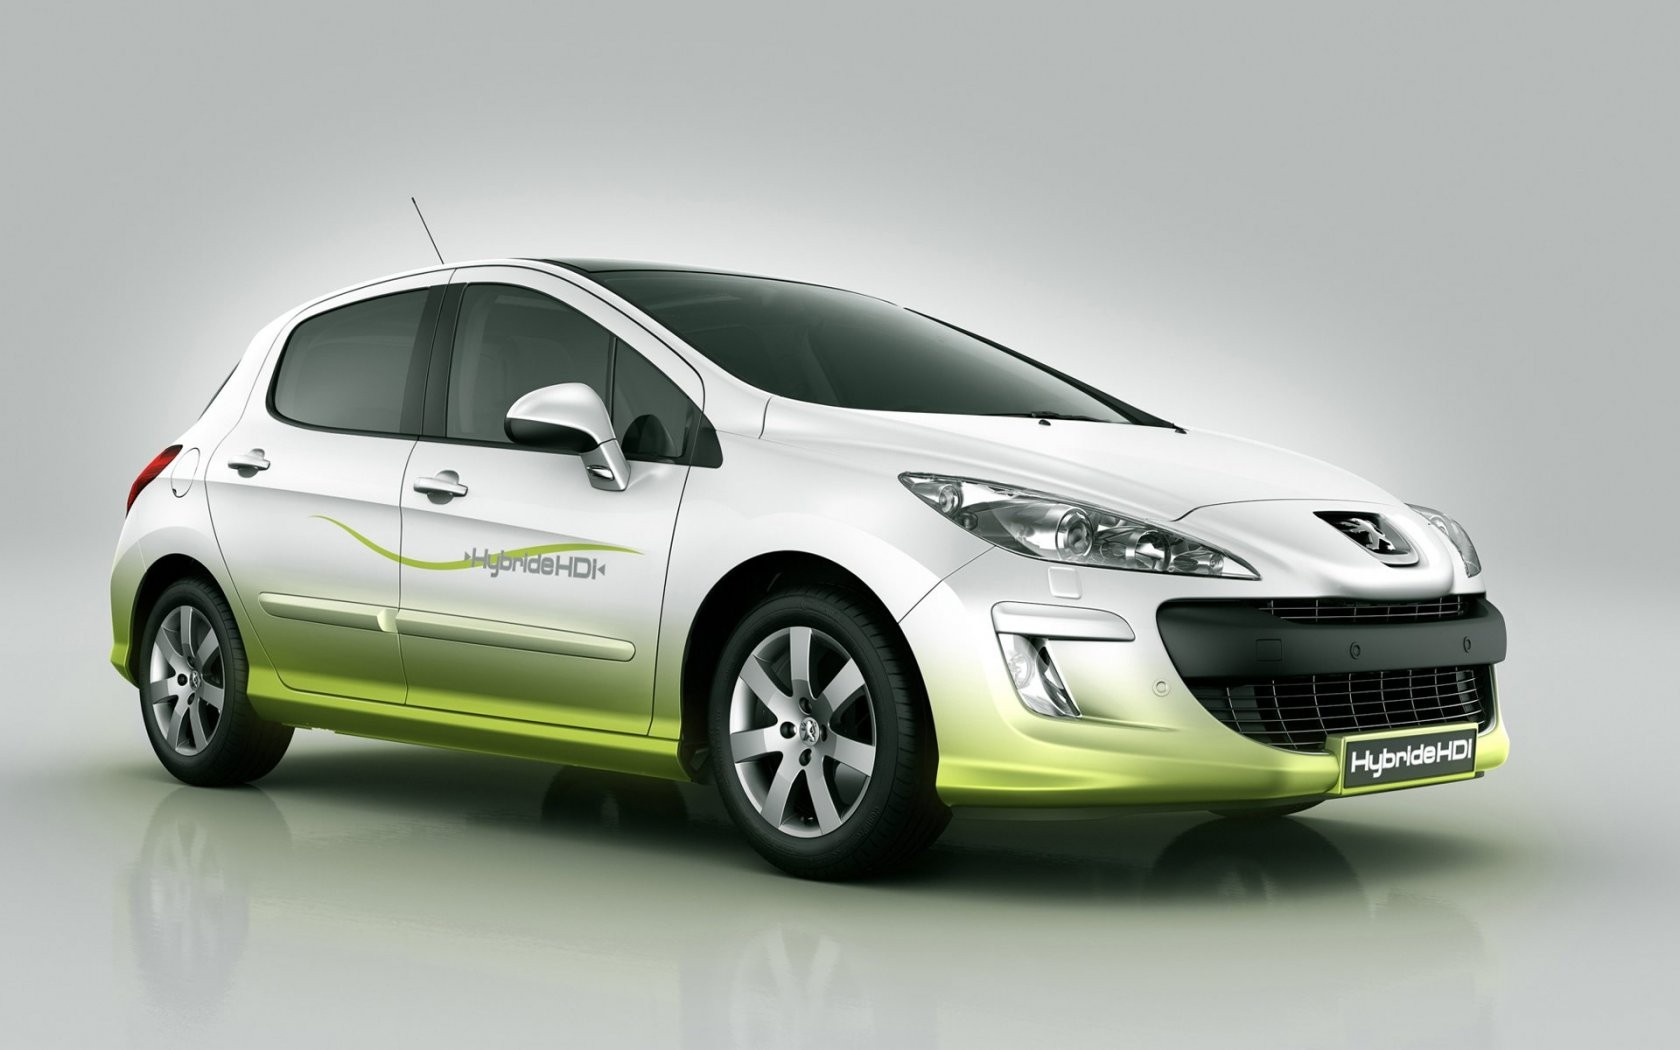 Peugeot 308 Hdi 110 Front Angle Wide